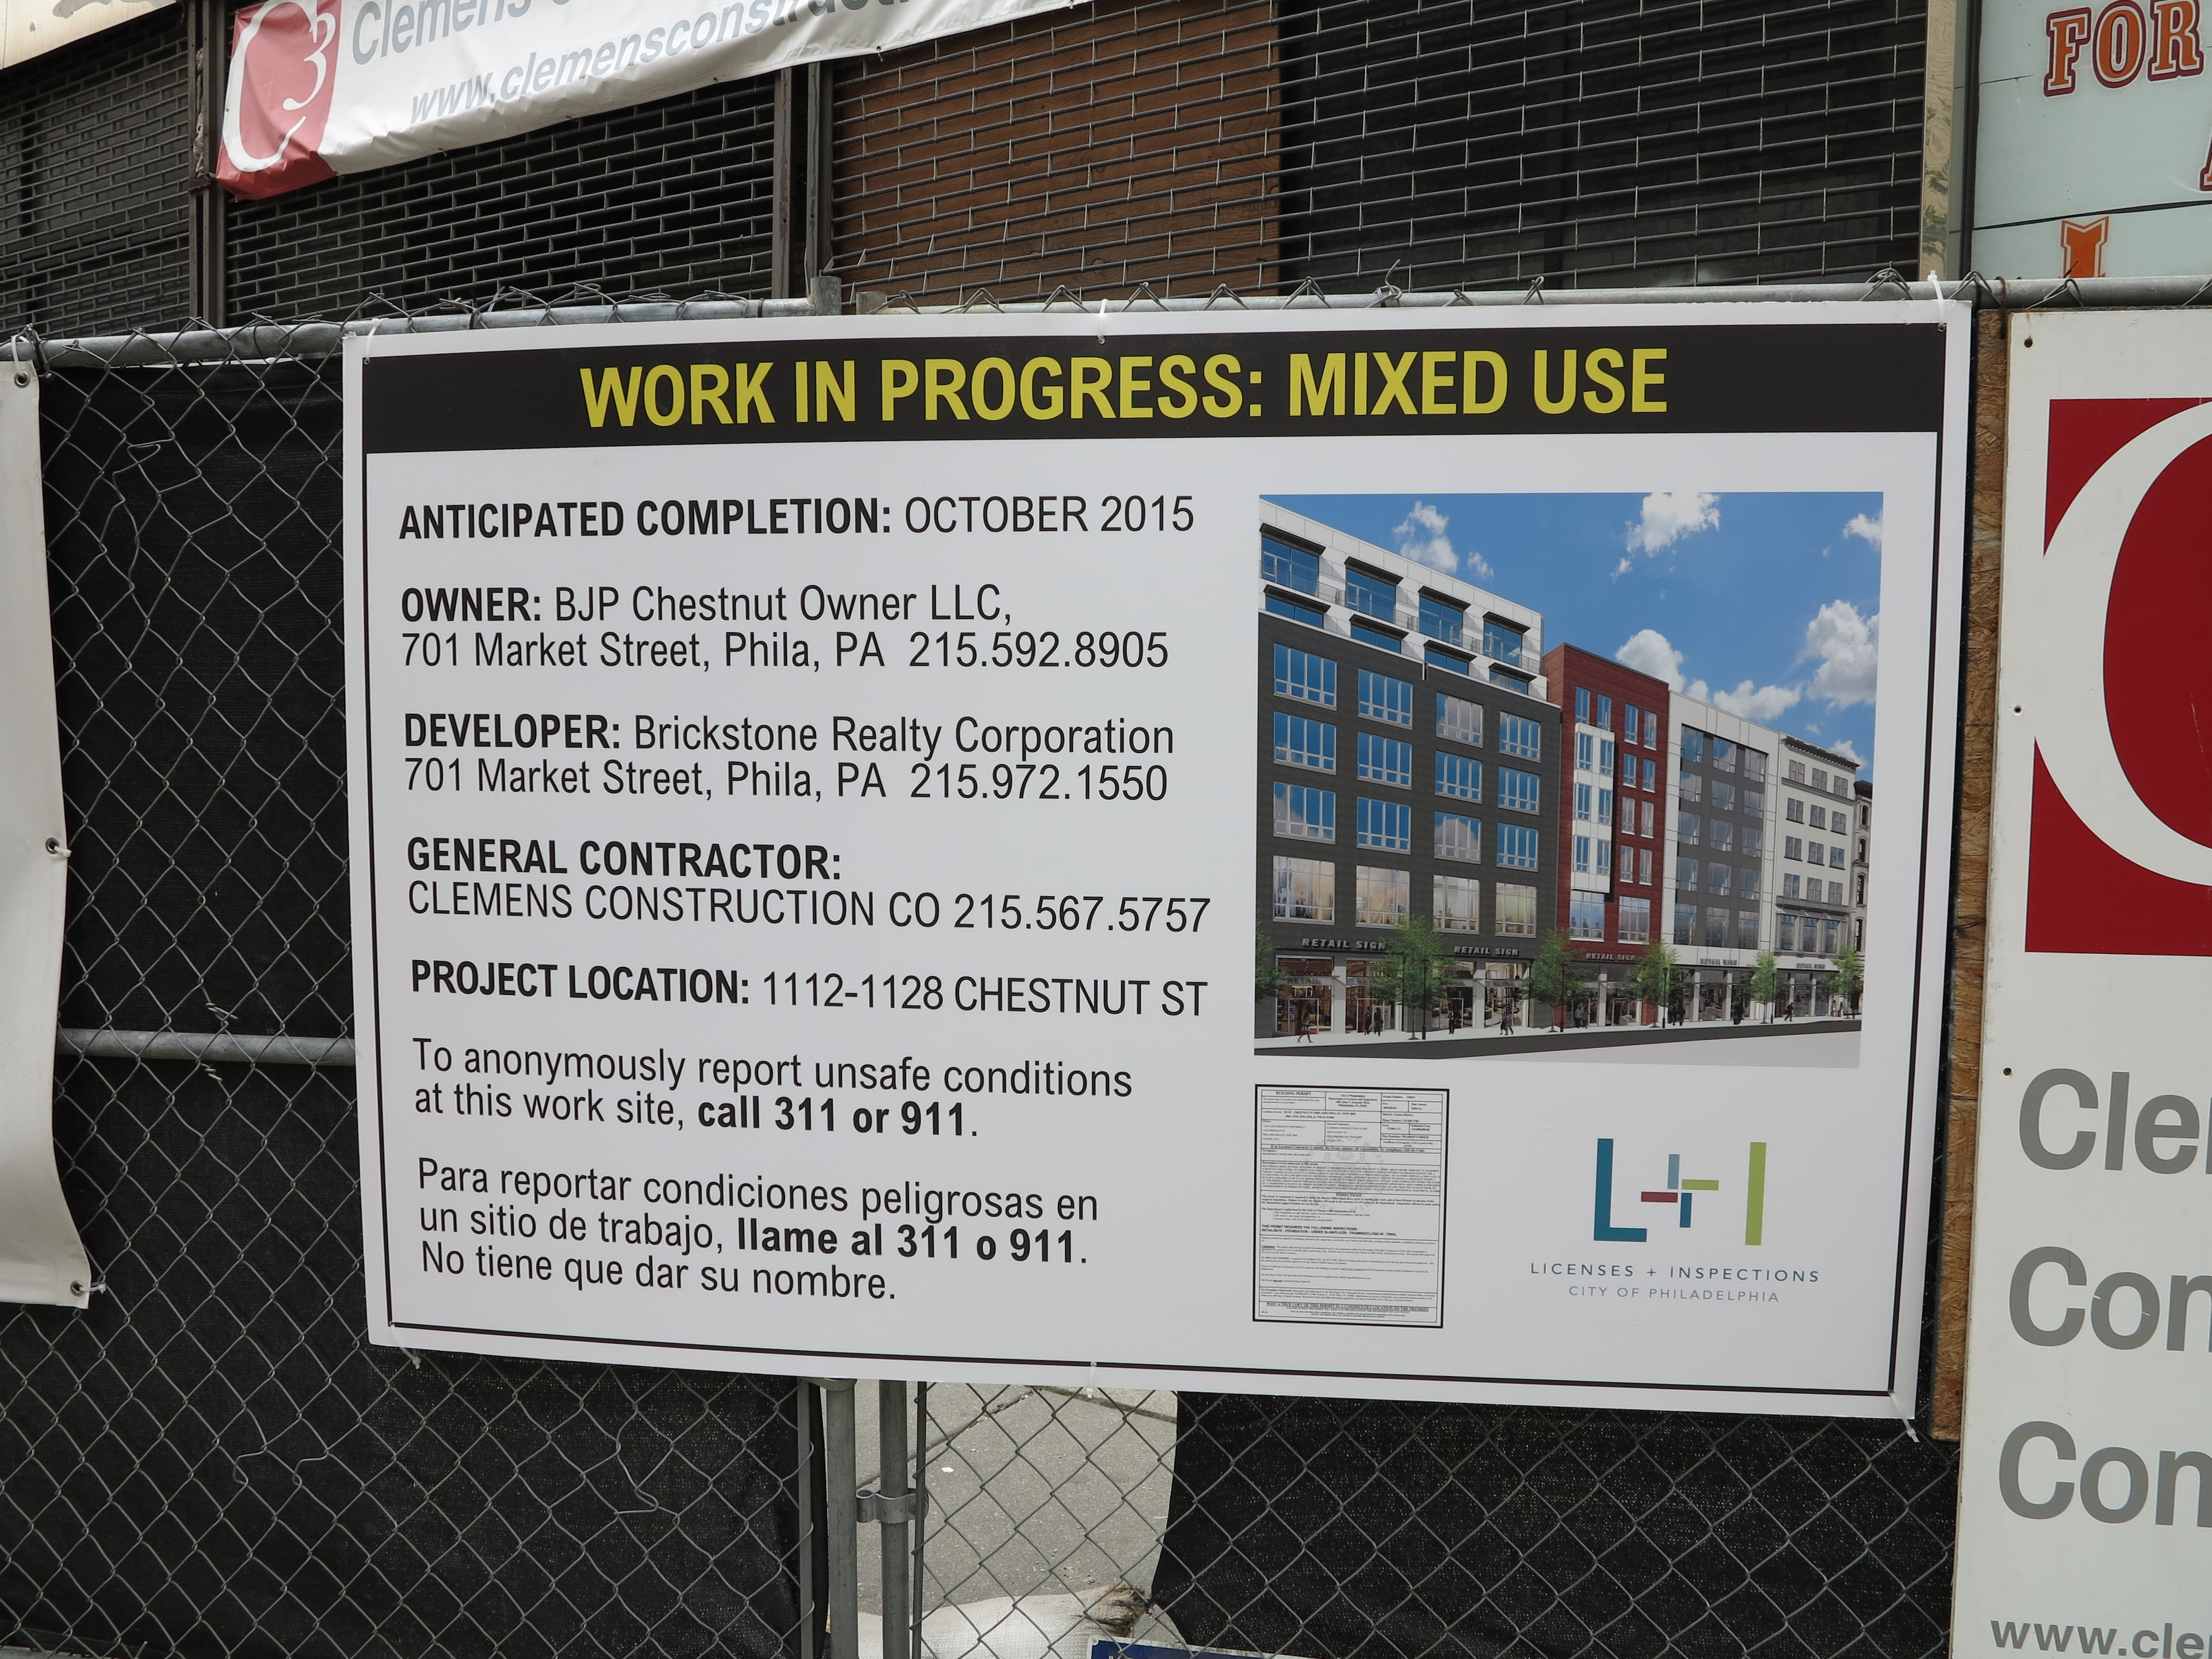 WORK IN PROGRESS: new project information sign at 1112-1128 Chestnut Street